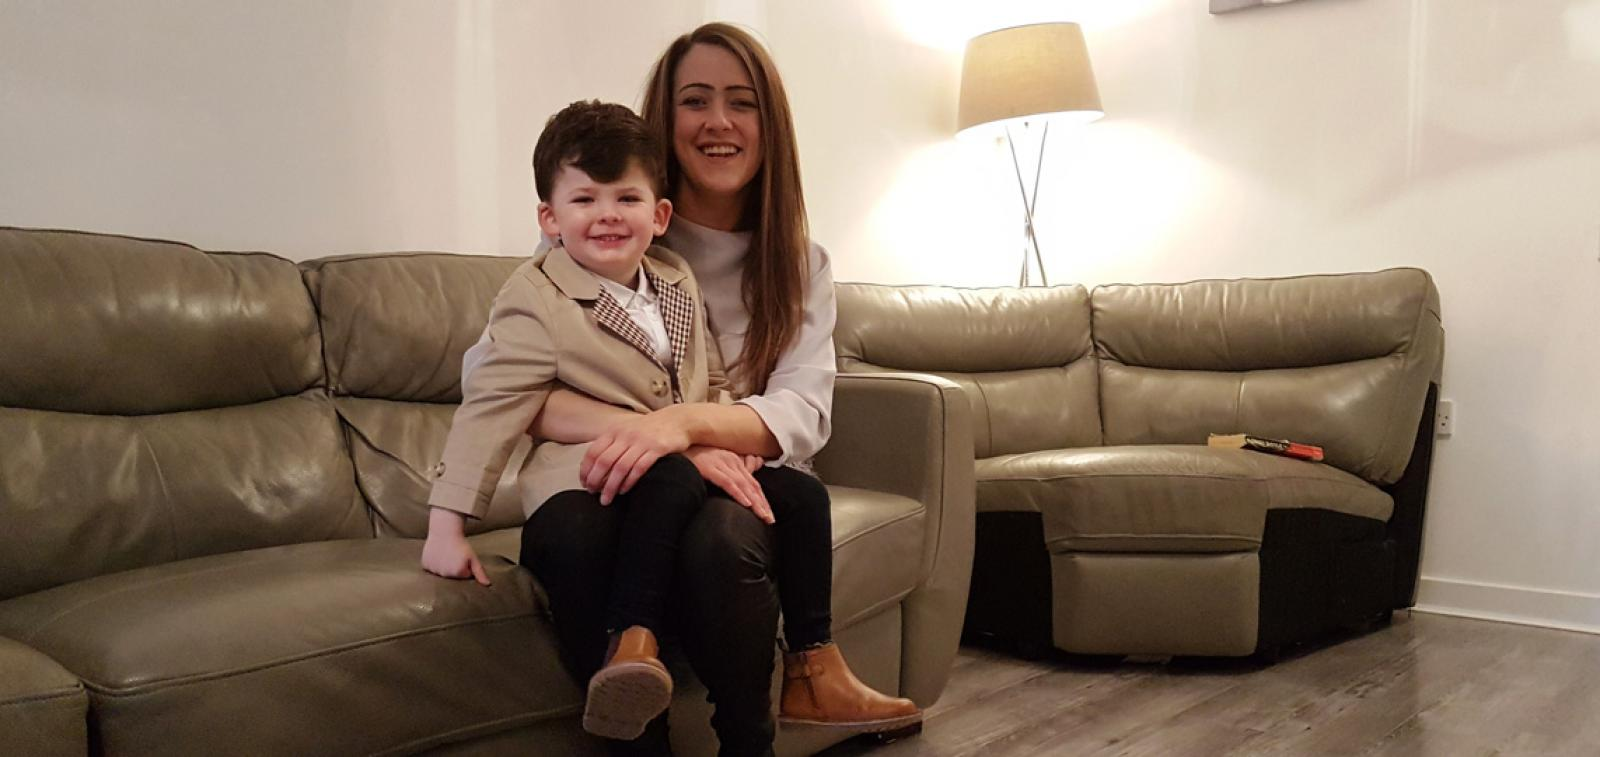 Brooke and her son within their home